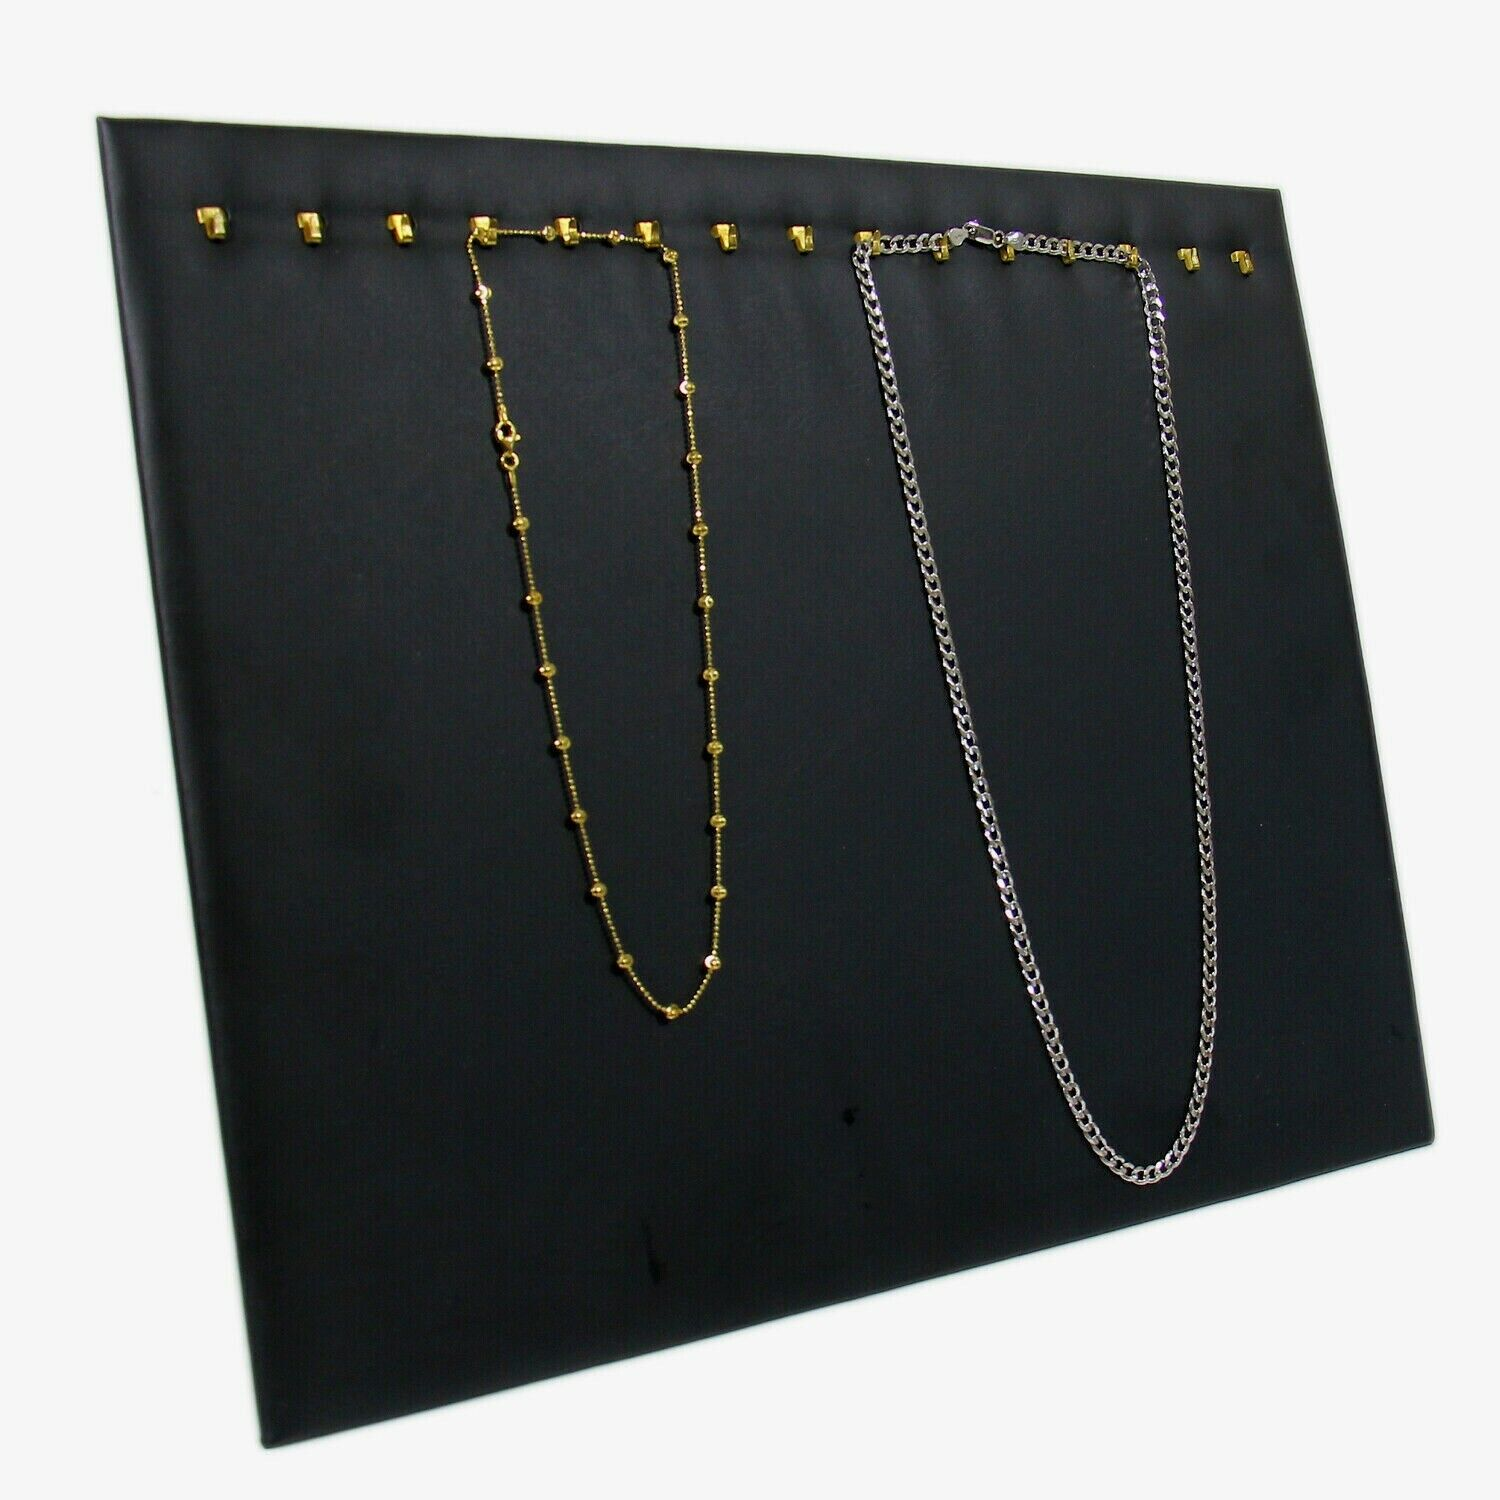 Black Faux Leather 15 Hook Necklace Chain Jewelry Display Ho